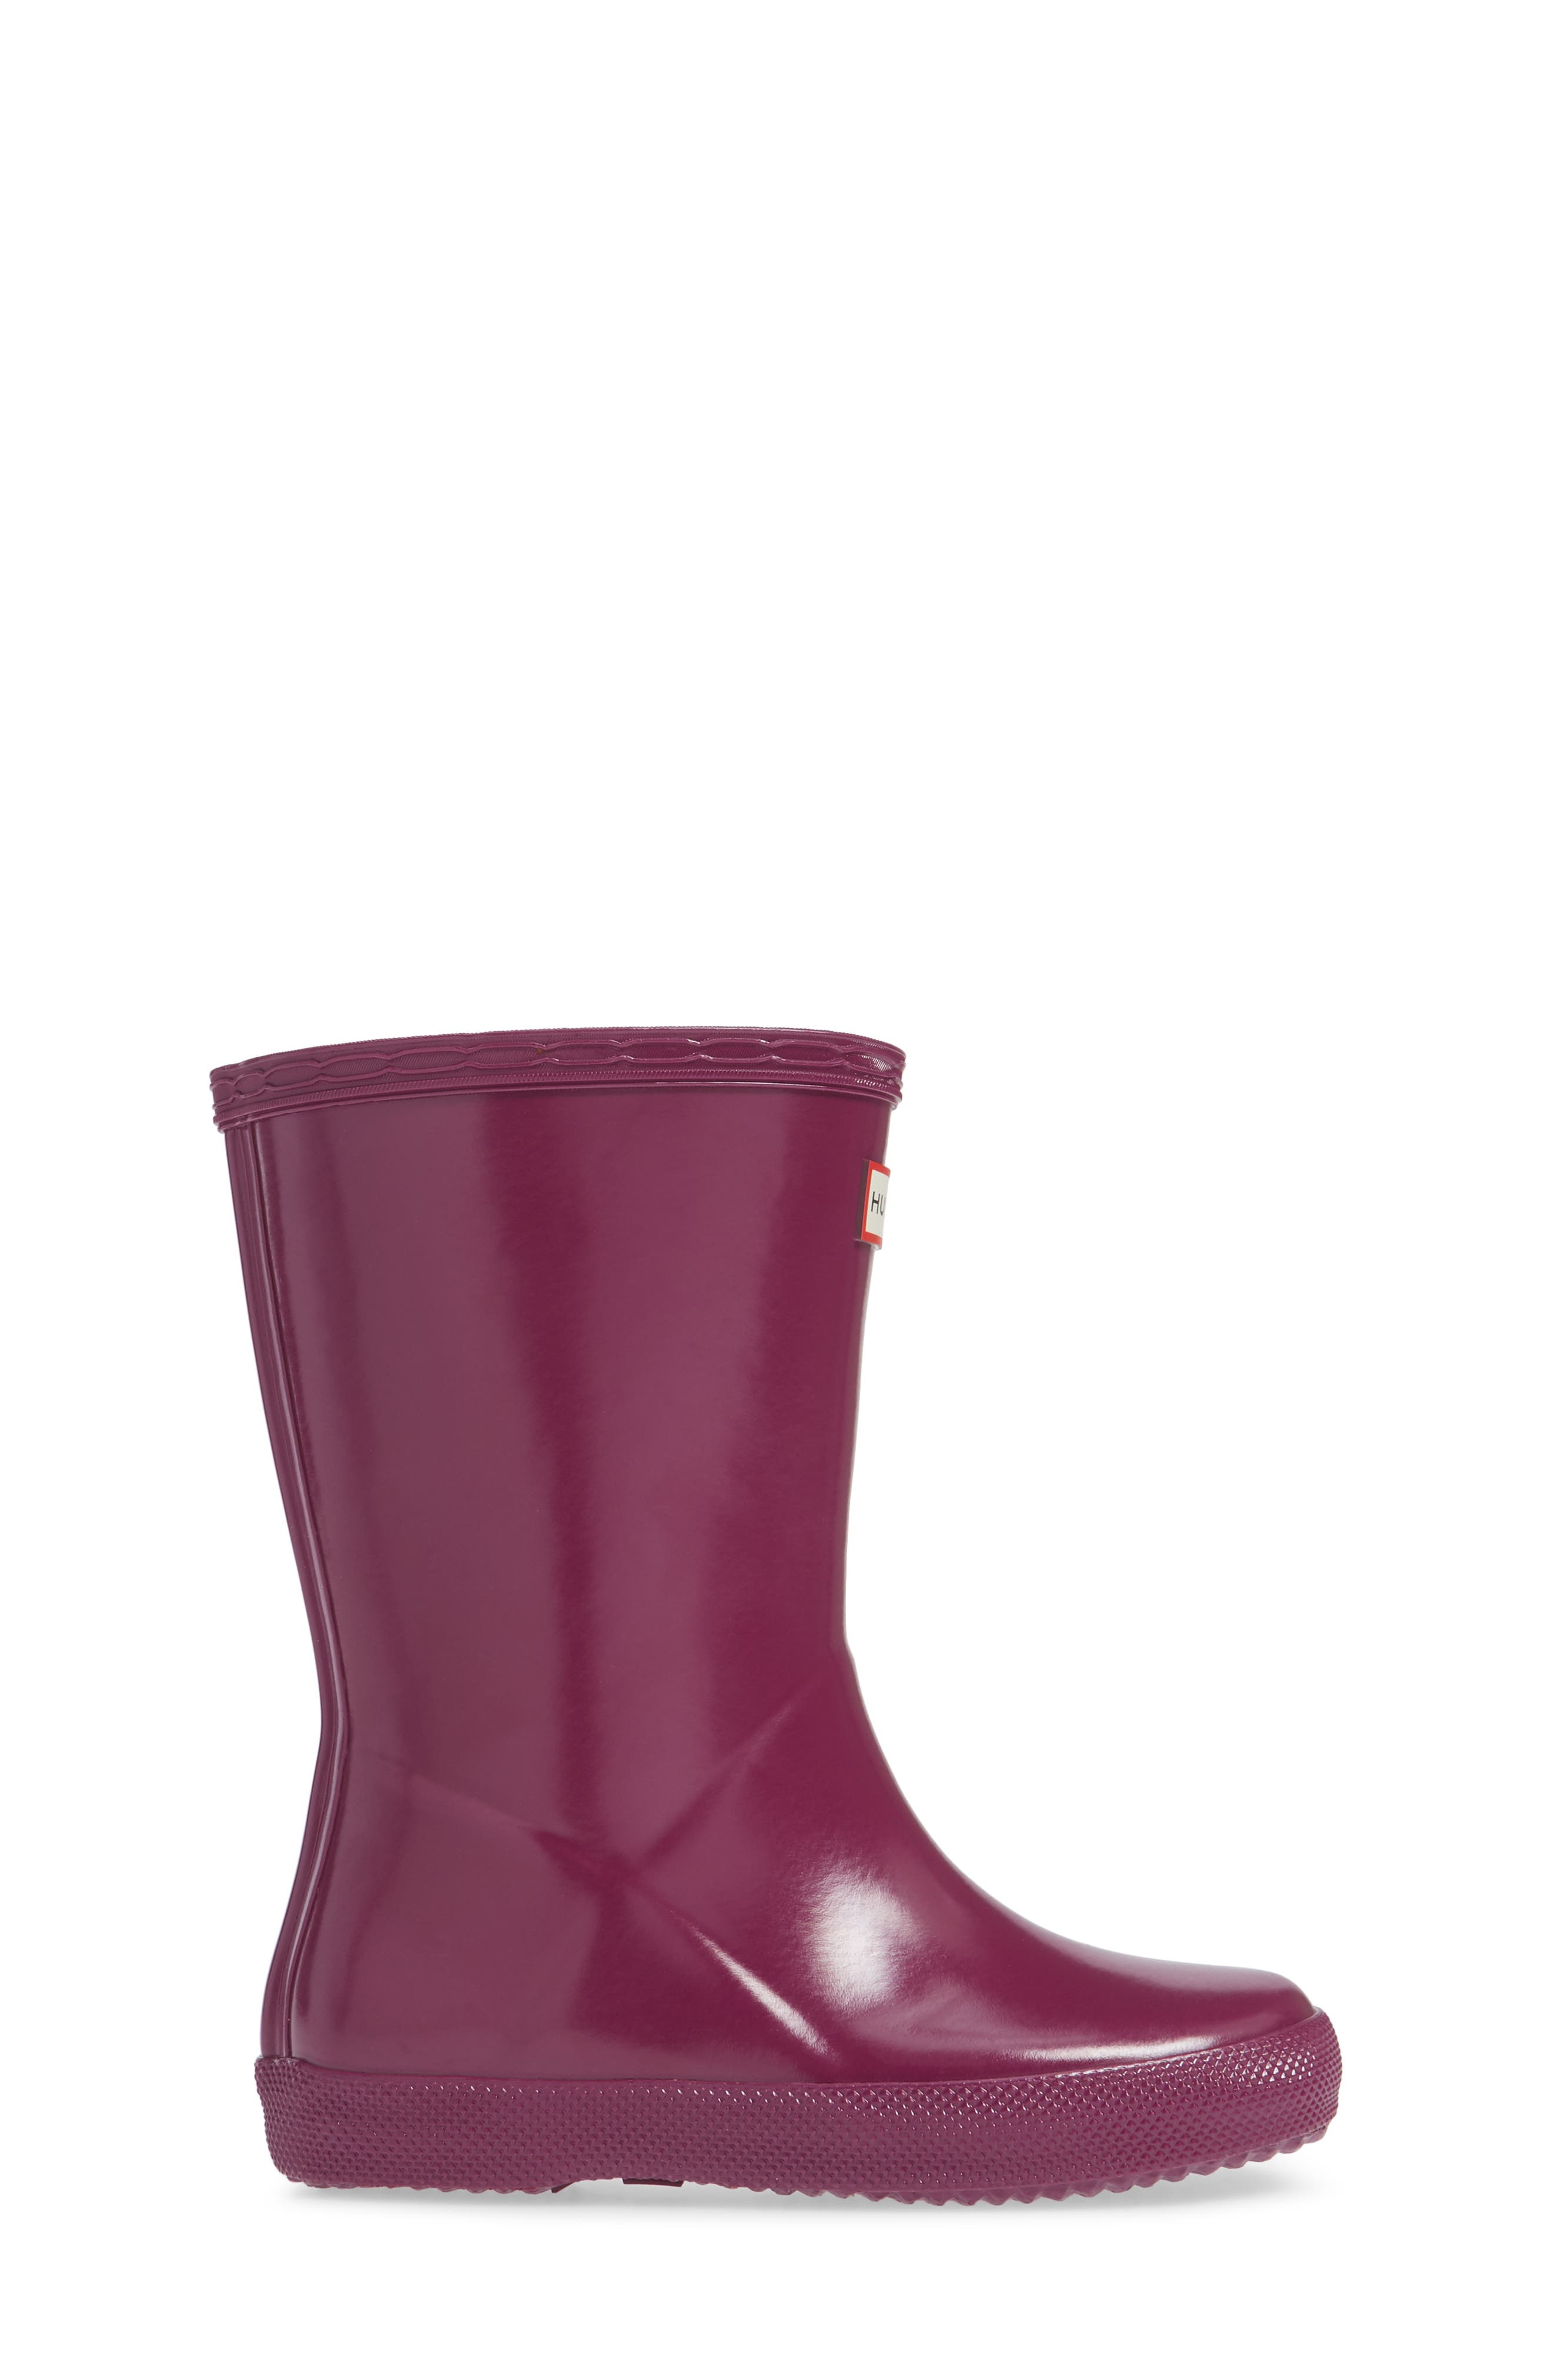 'First Gloss' Rain Boot,                             Alternate thumbnail 3, color,                             VIOLET